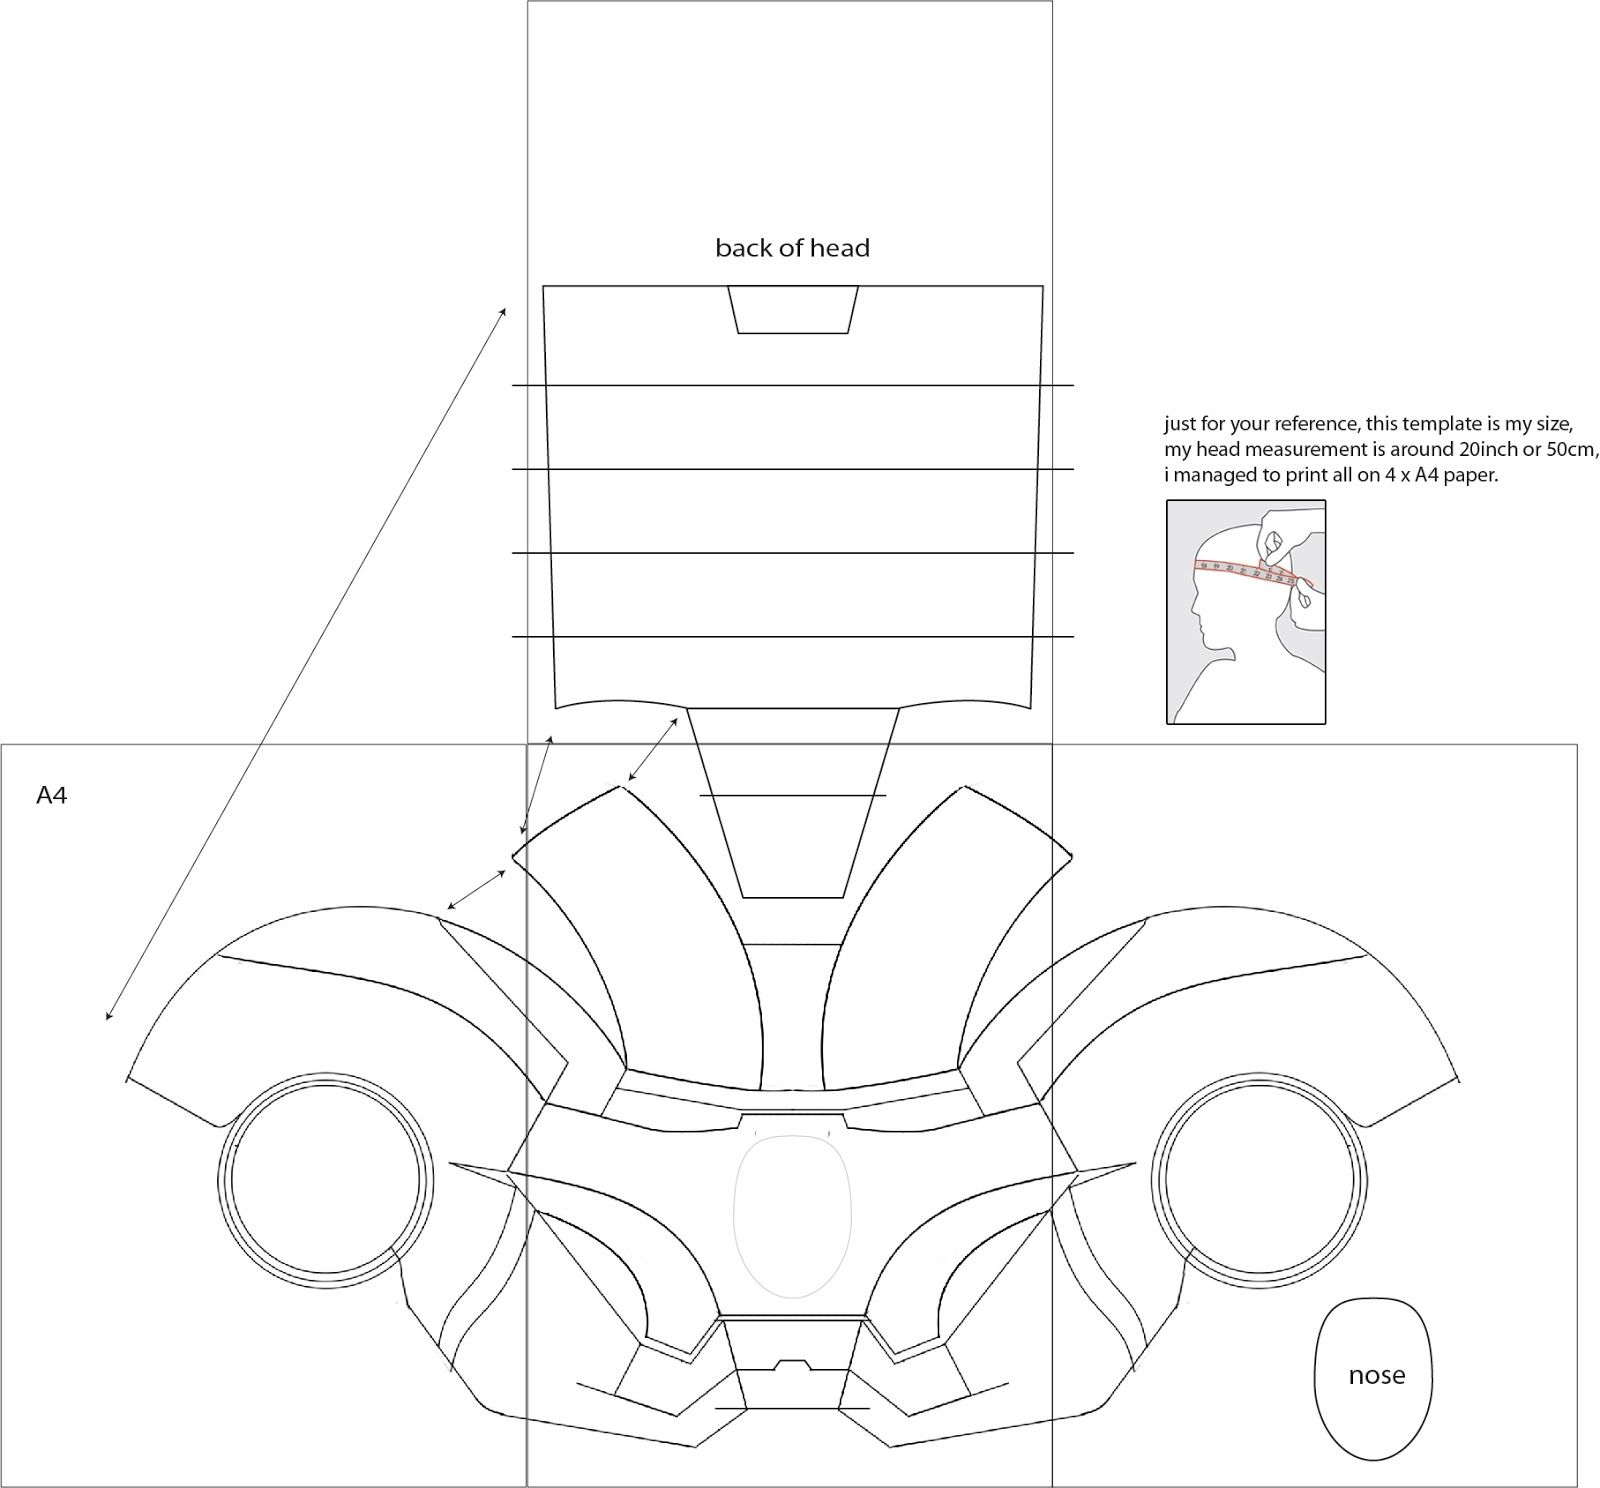 Iron Man 4 Costume Helmet Diy Cardboard With Template In 2018